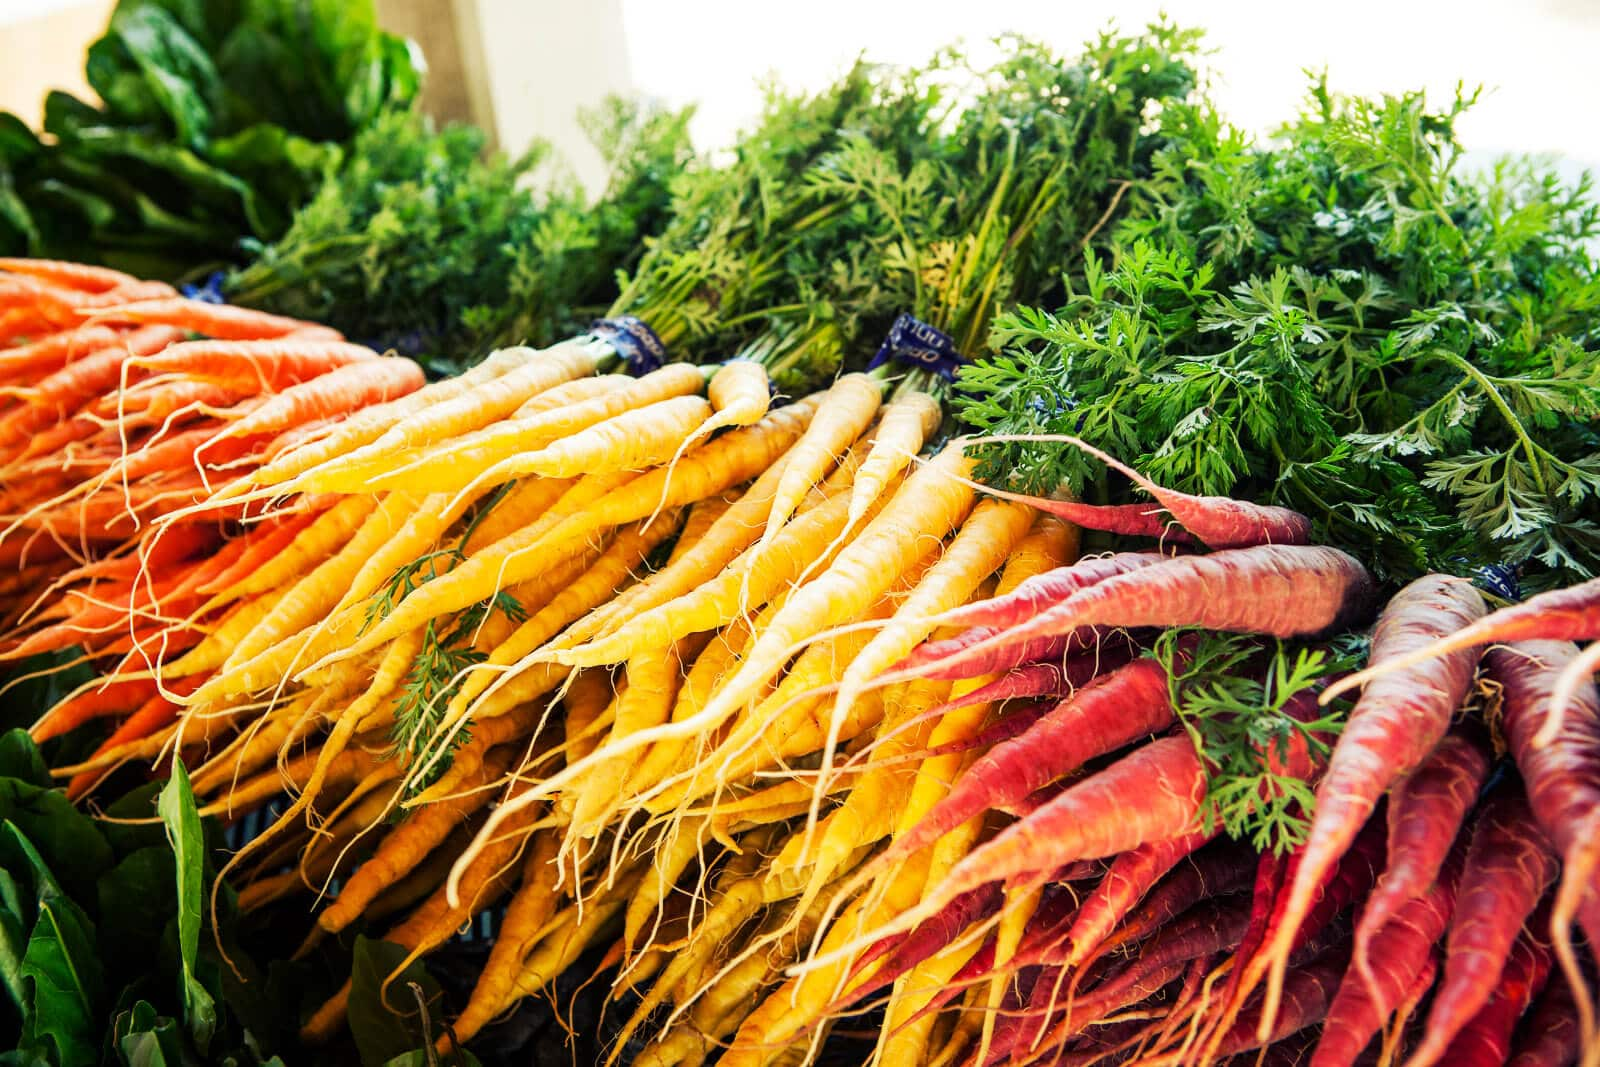 Buy carrot tops from the farmers market for the best quality and flavor